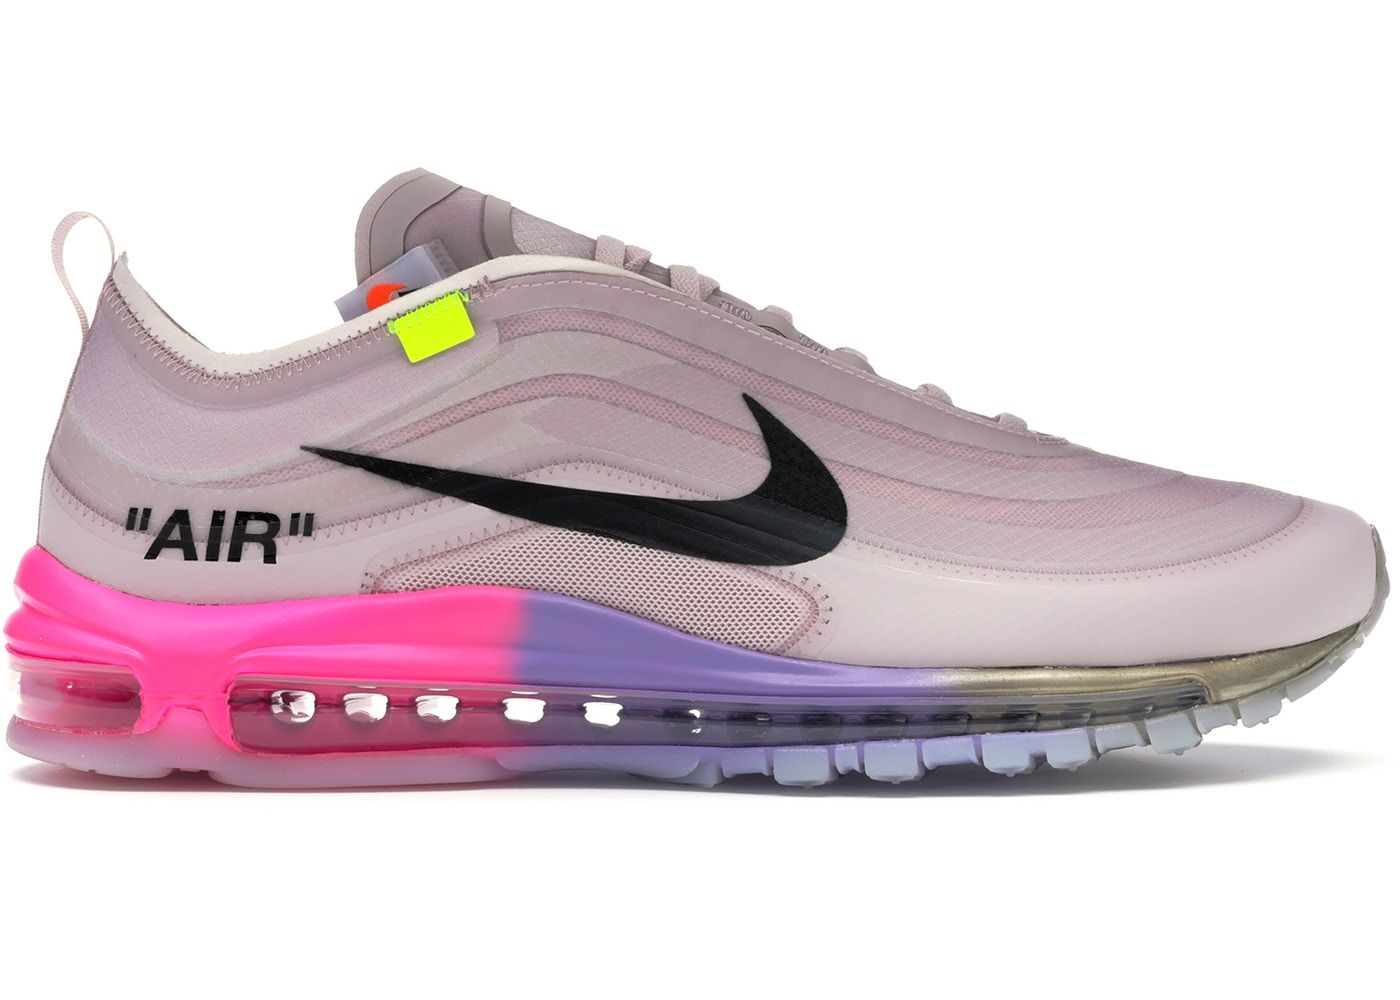 Check out the Air Max 97 Off-White Elemental Rose Serena